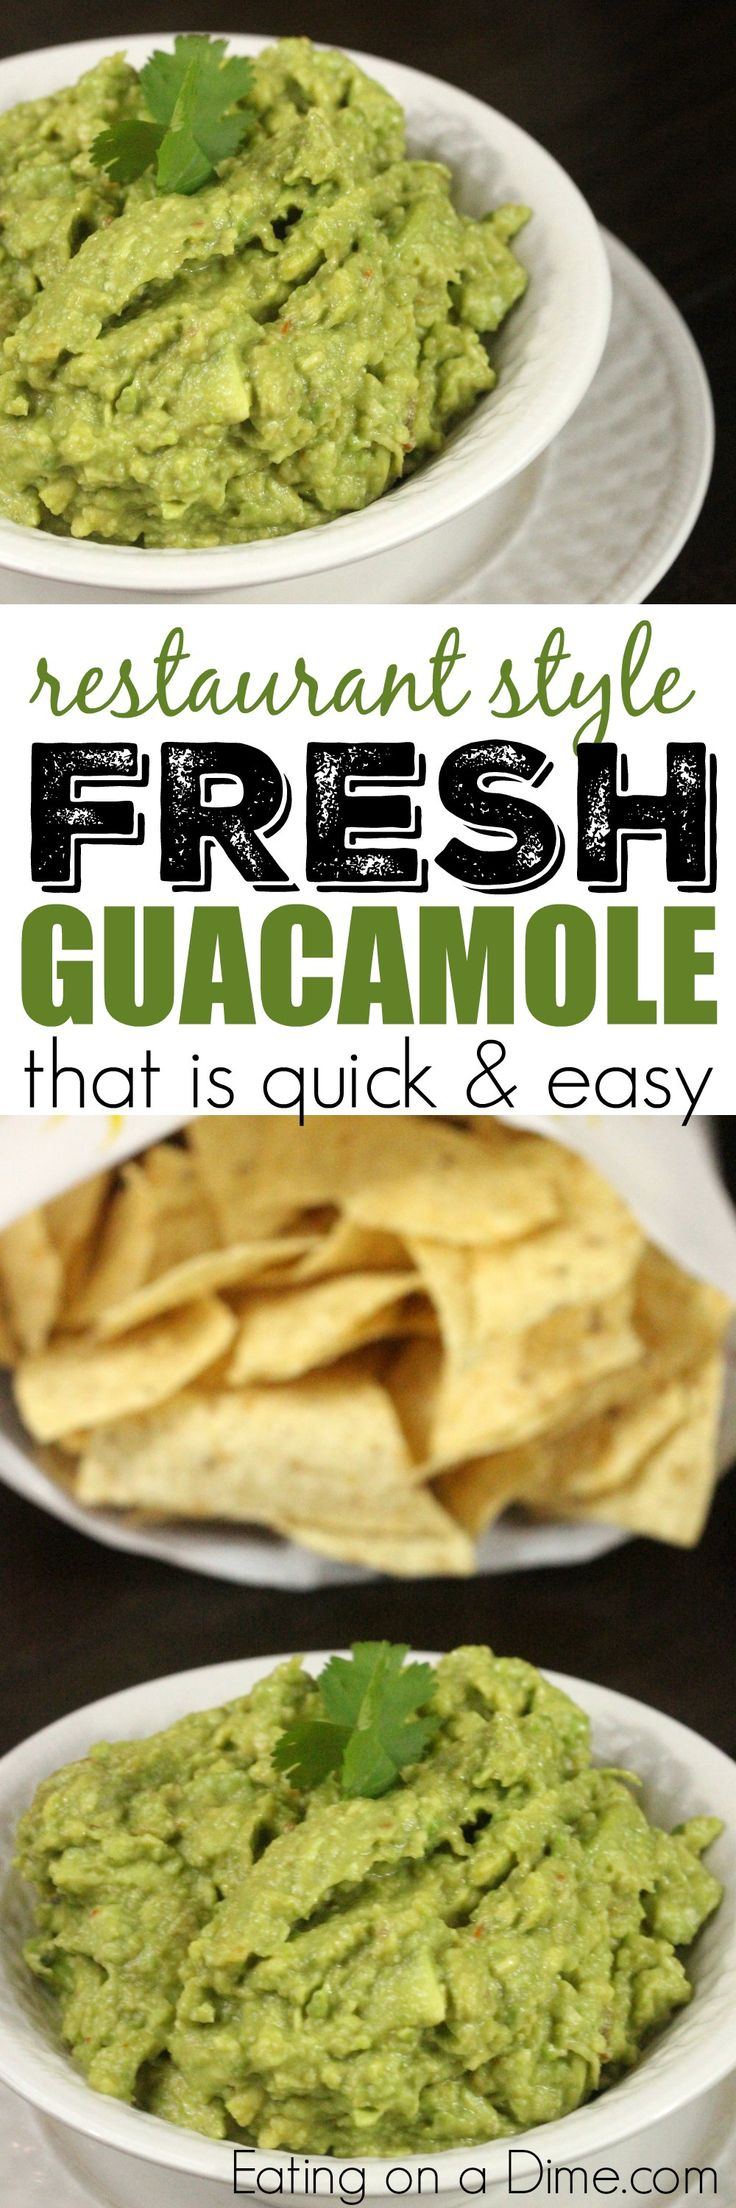 We love this Very Simple Guacamole Recipe